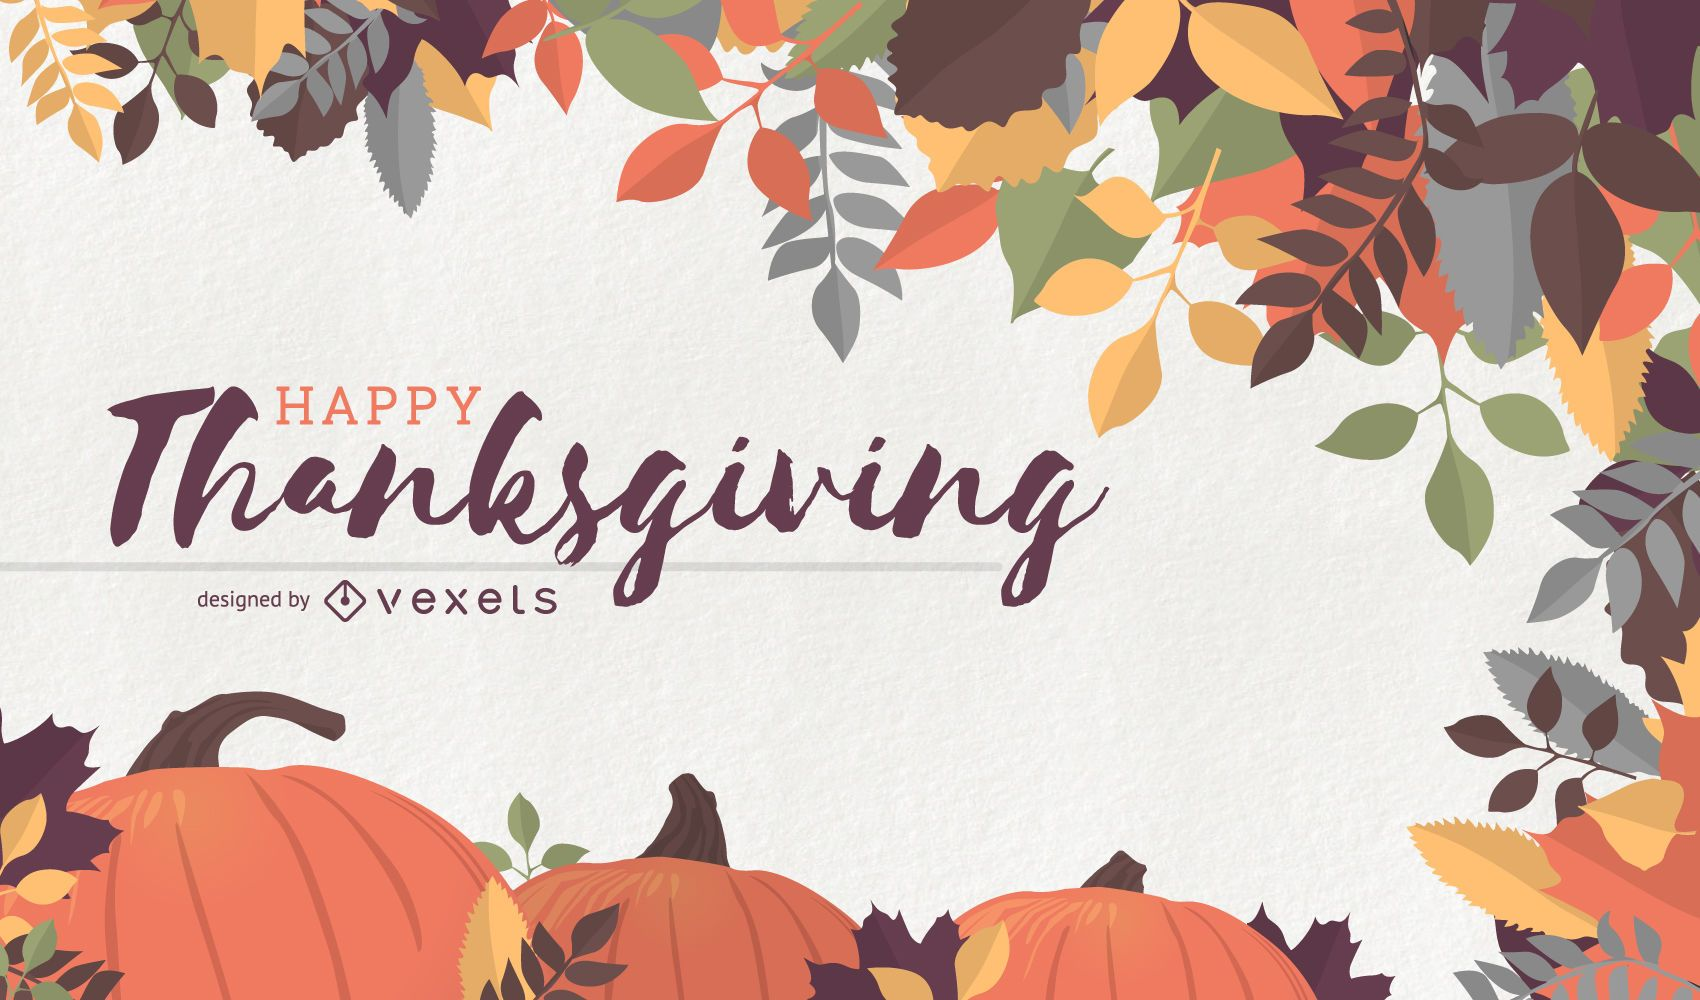 Thanksgiving background with pumpkins and leaves